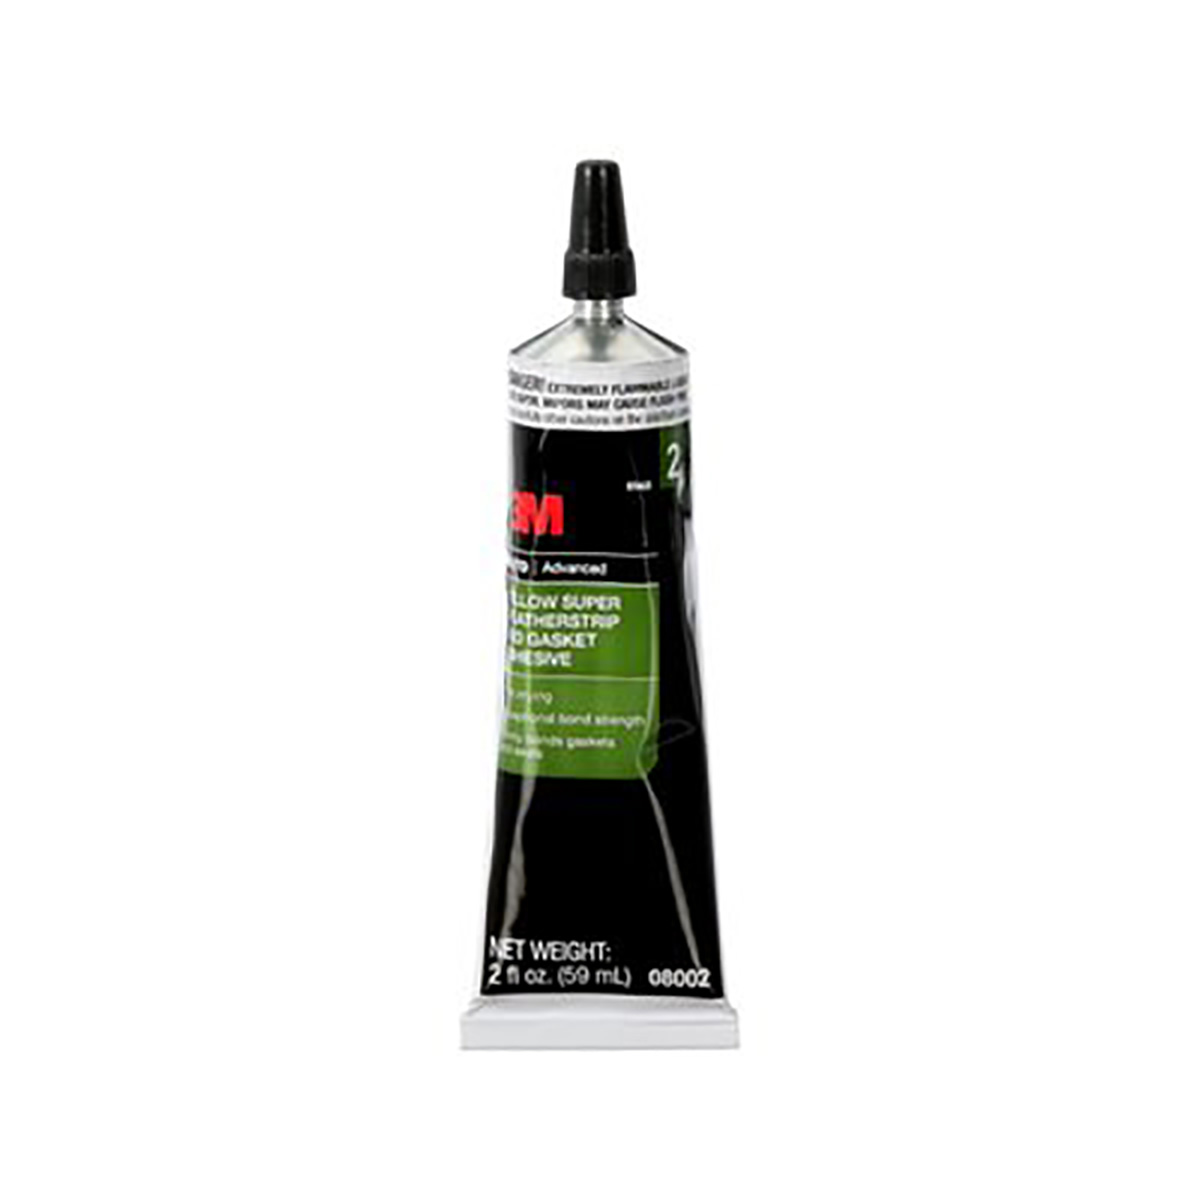 3M(TM) Yellow Super Weatherstrip and Gasket Adhesive, 08001, 5 fl oz